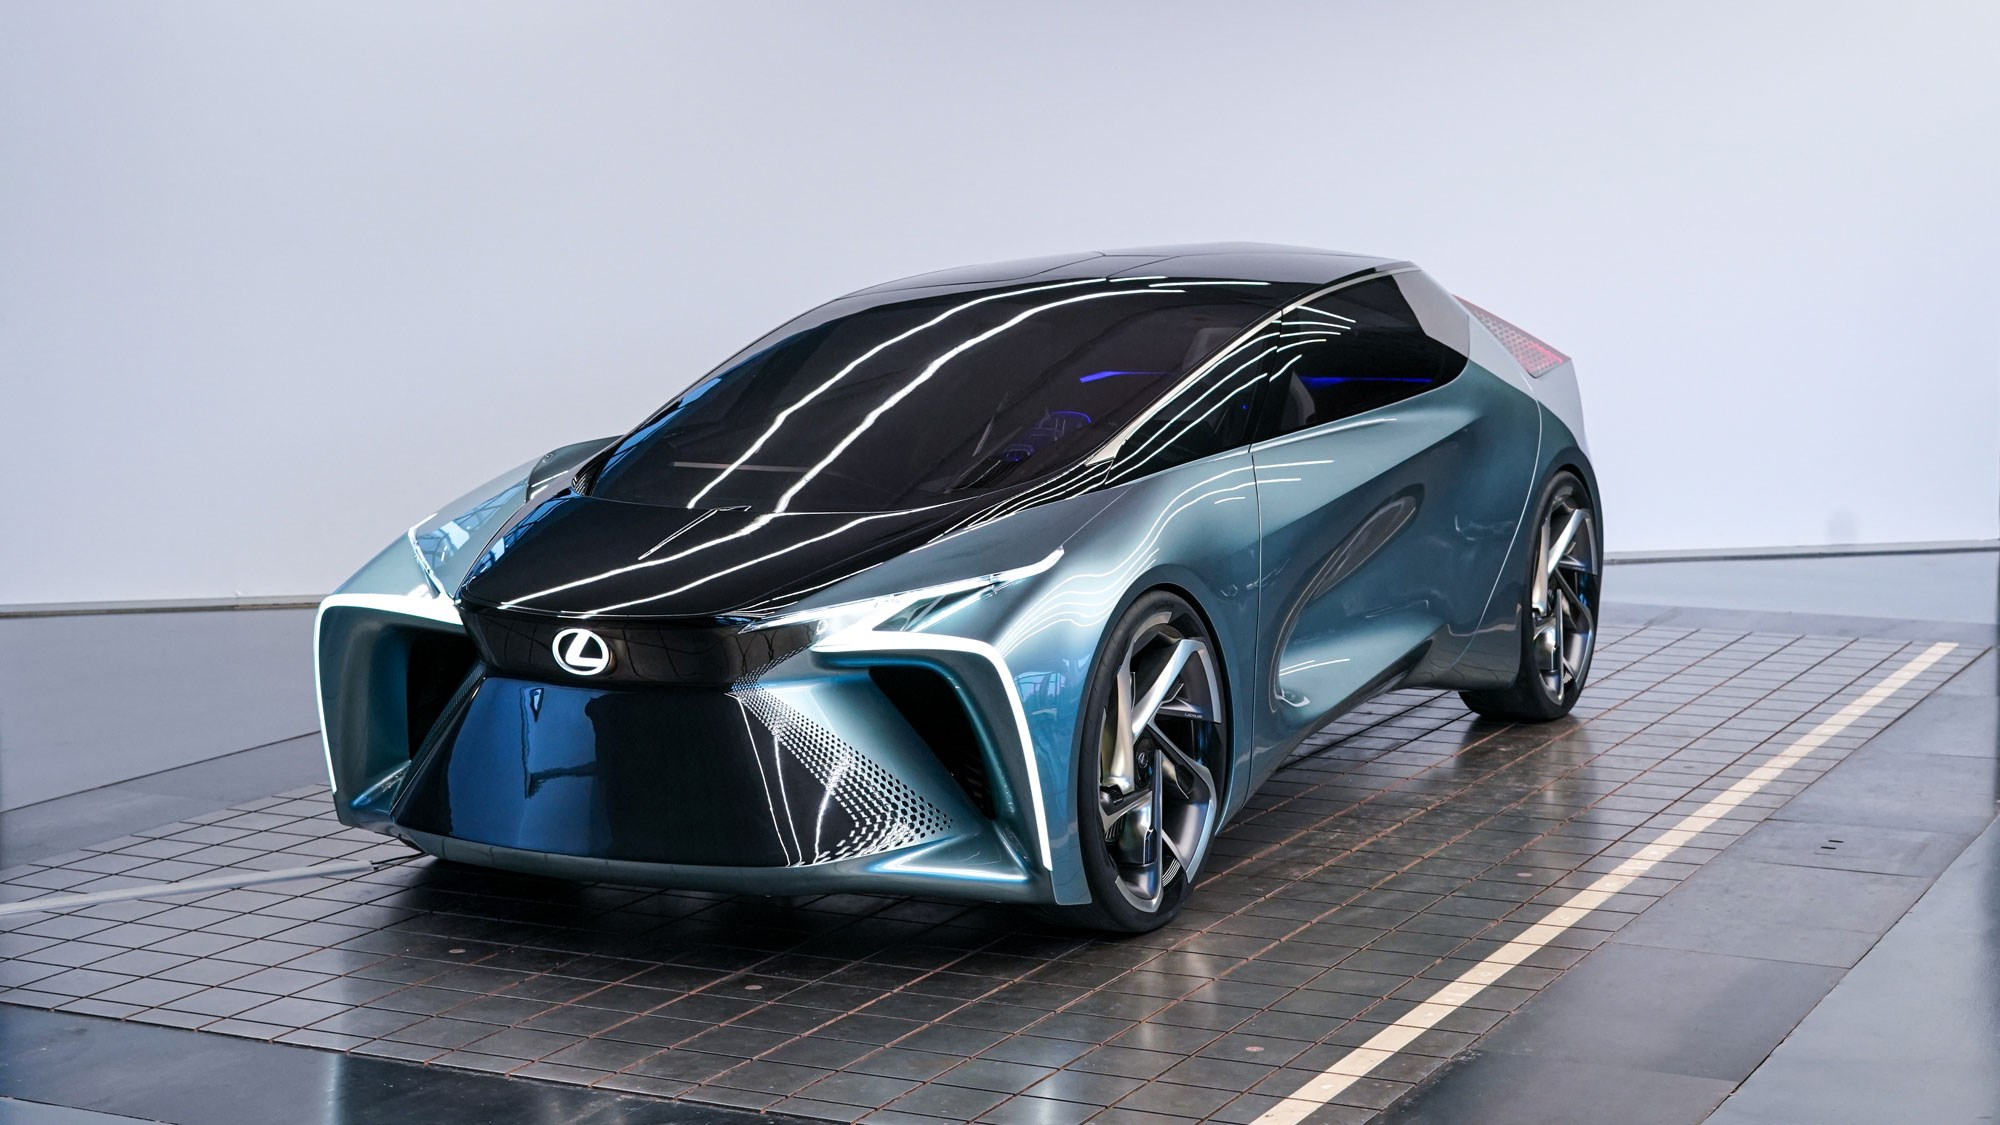 Watt took you so long? Lexus unveils electric LF-30 concept